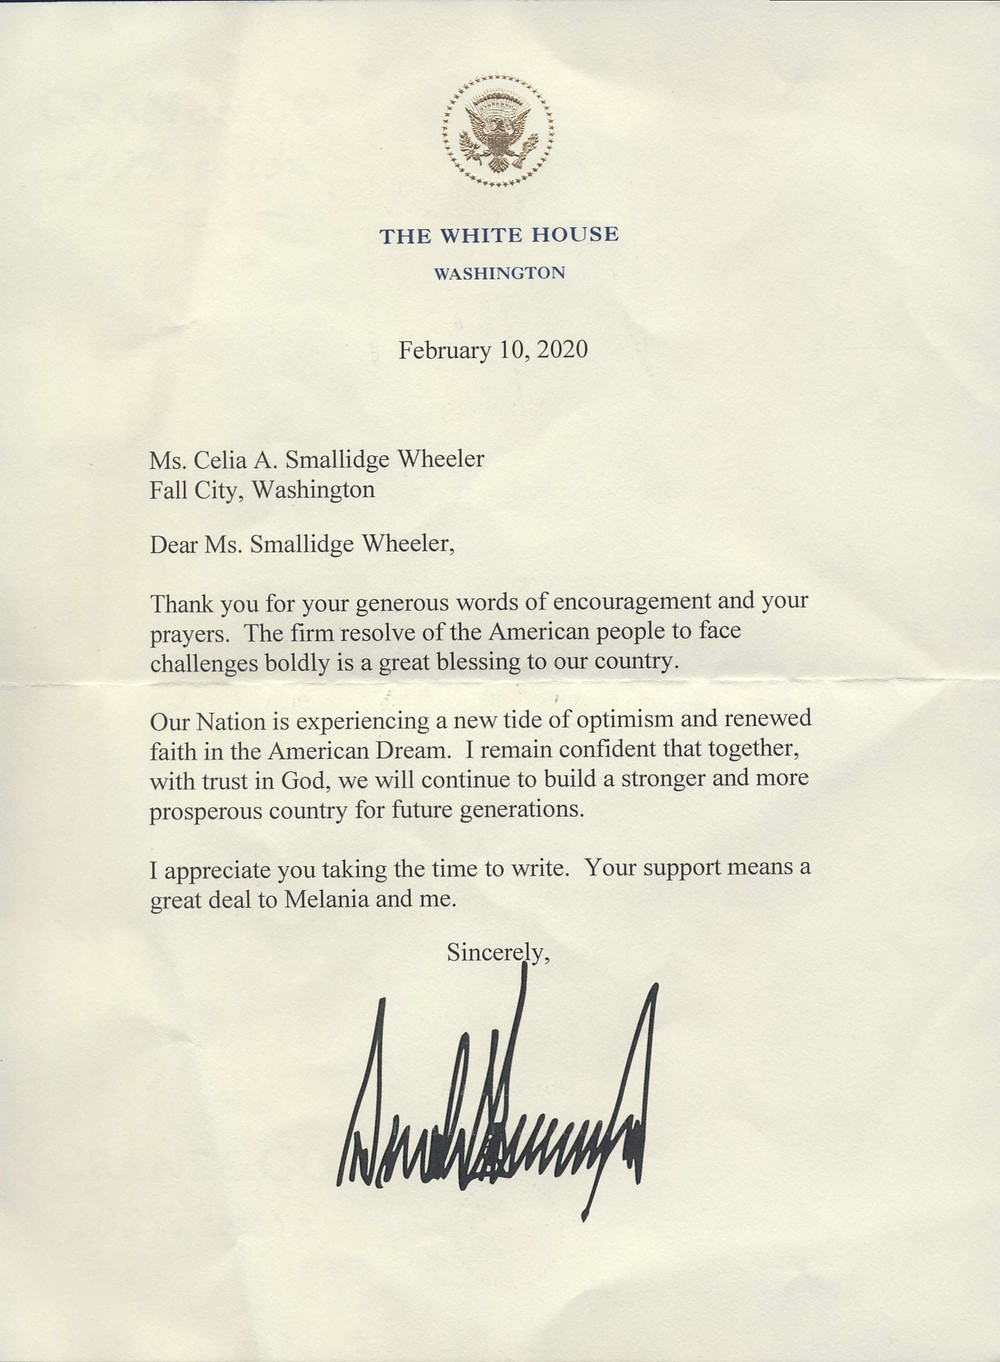 White House Letter from Donald Trump